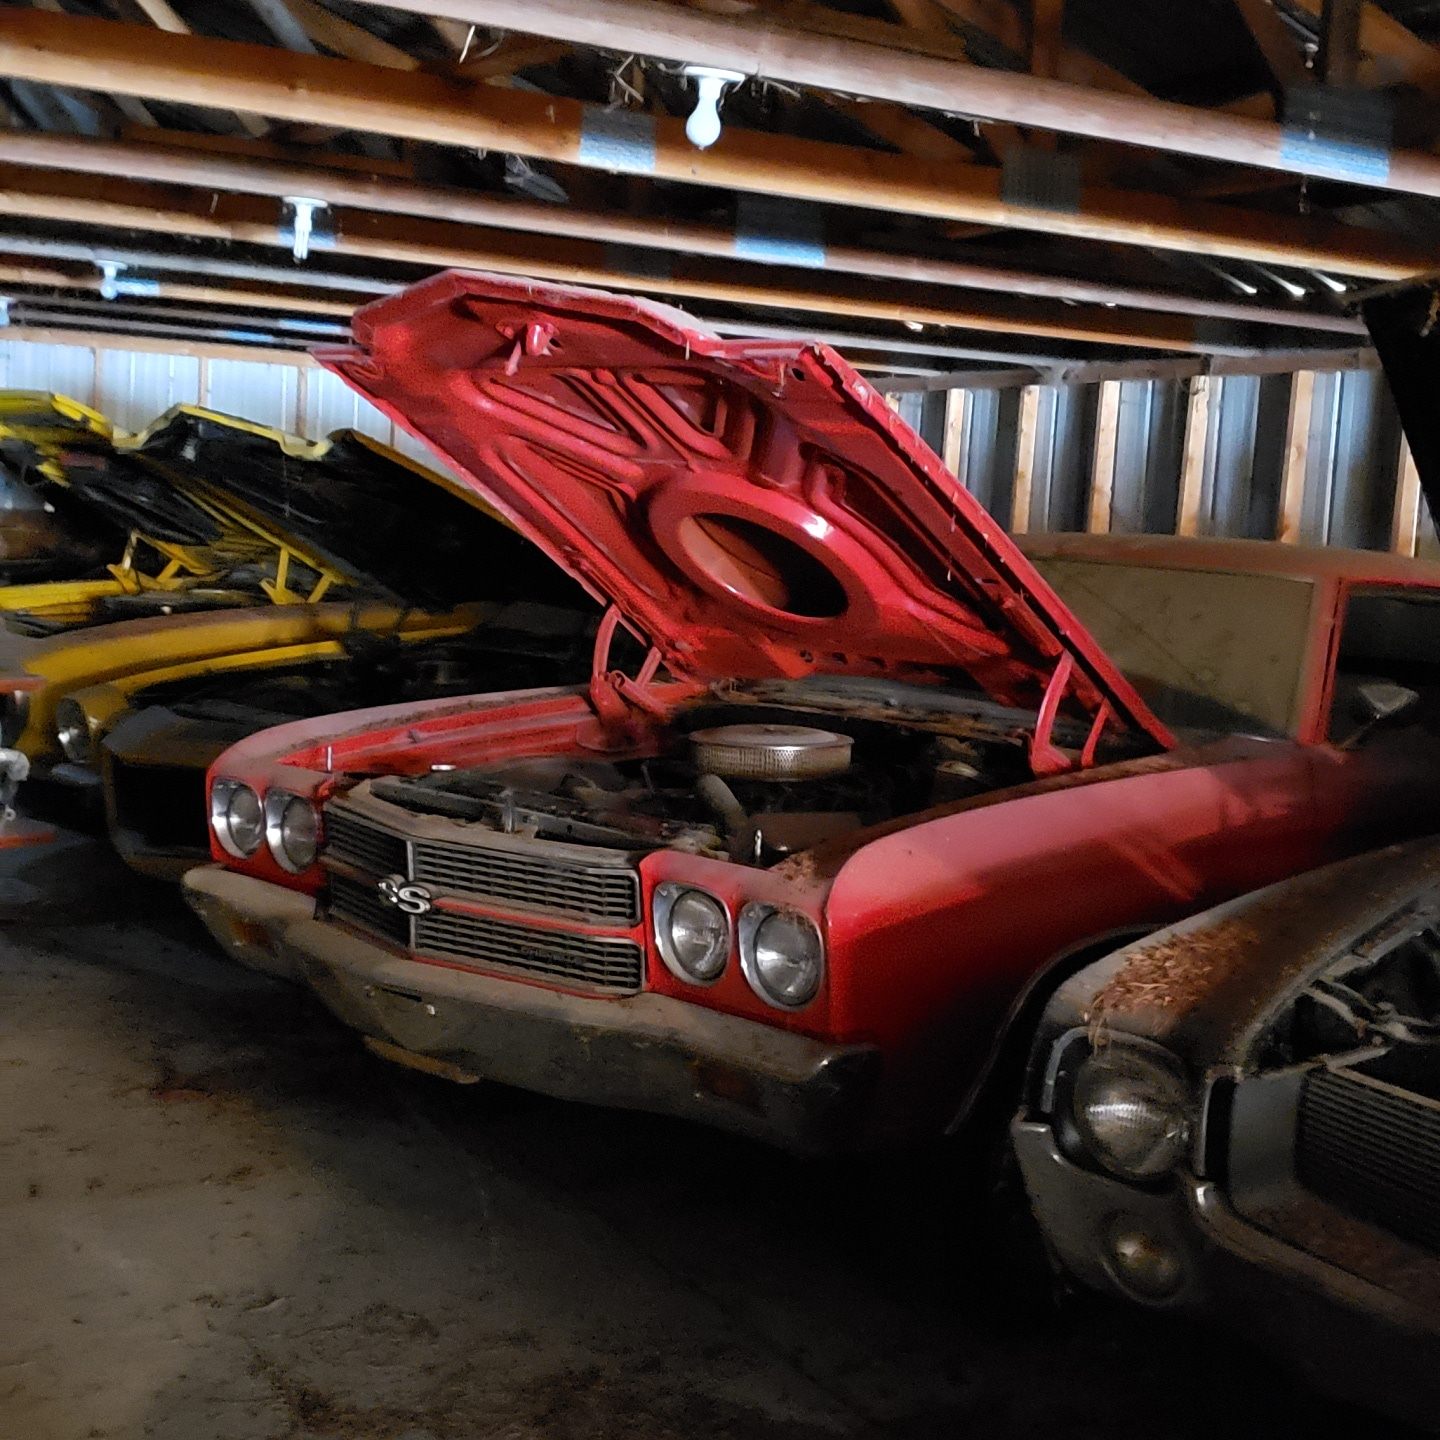 Iowa Muscle Car Hoard at Auction! The Coyote Johnson Collection Auction - image 18